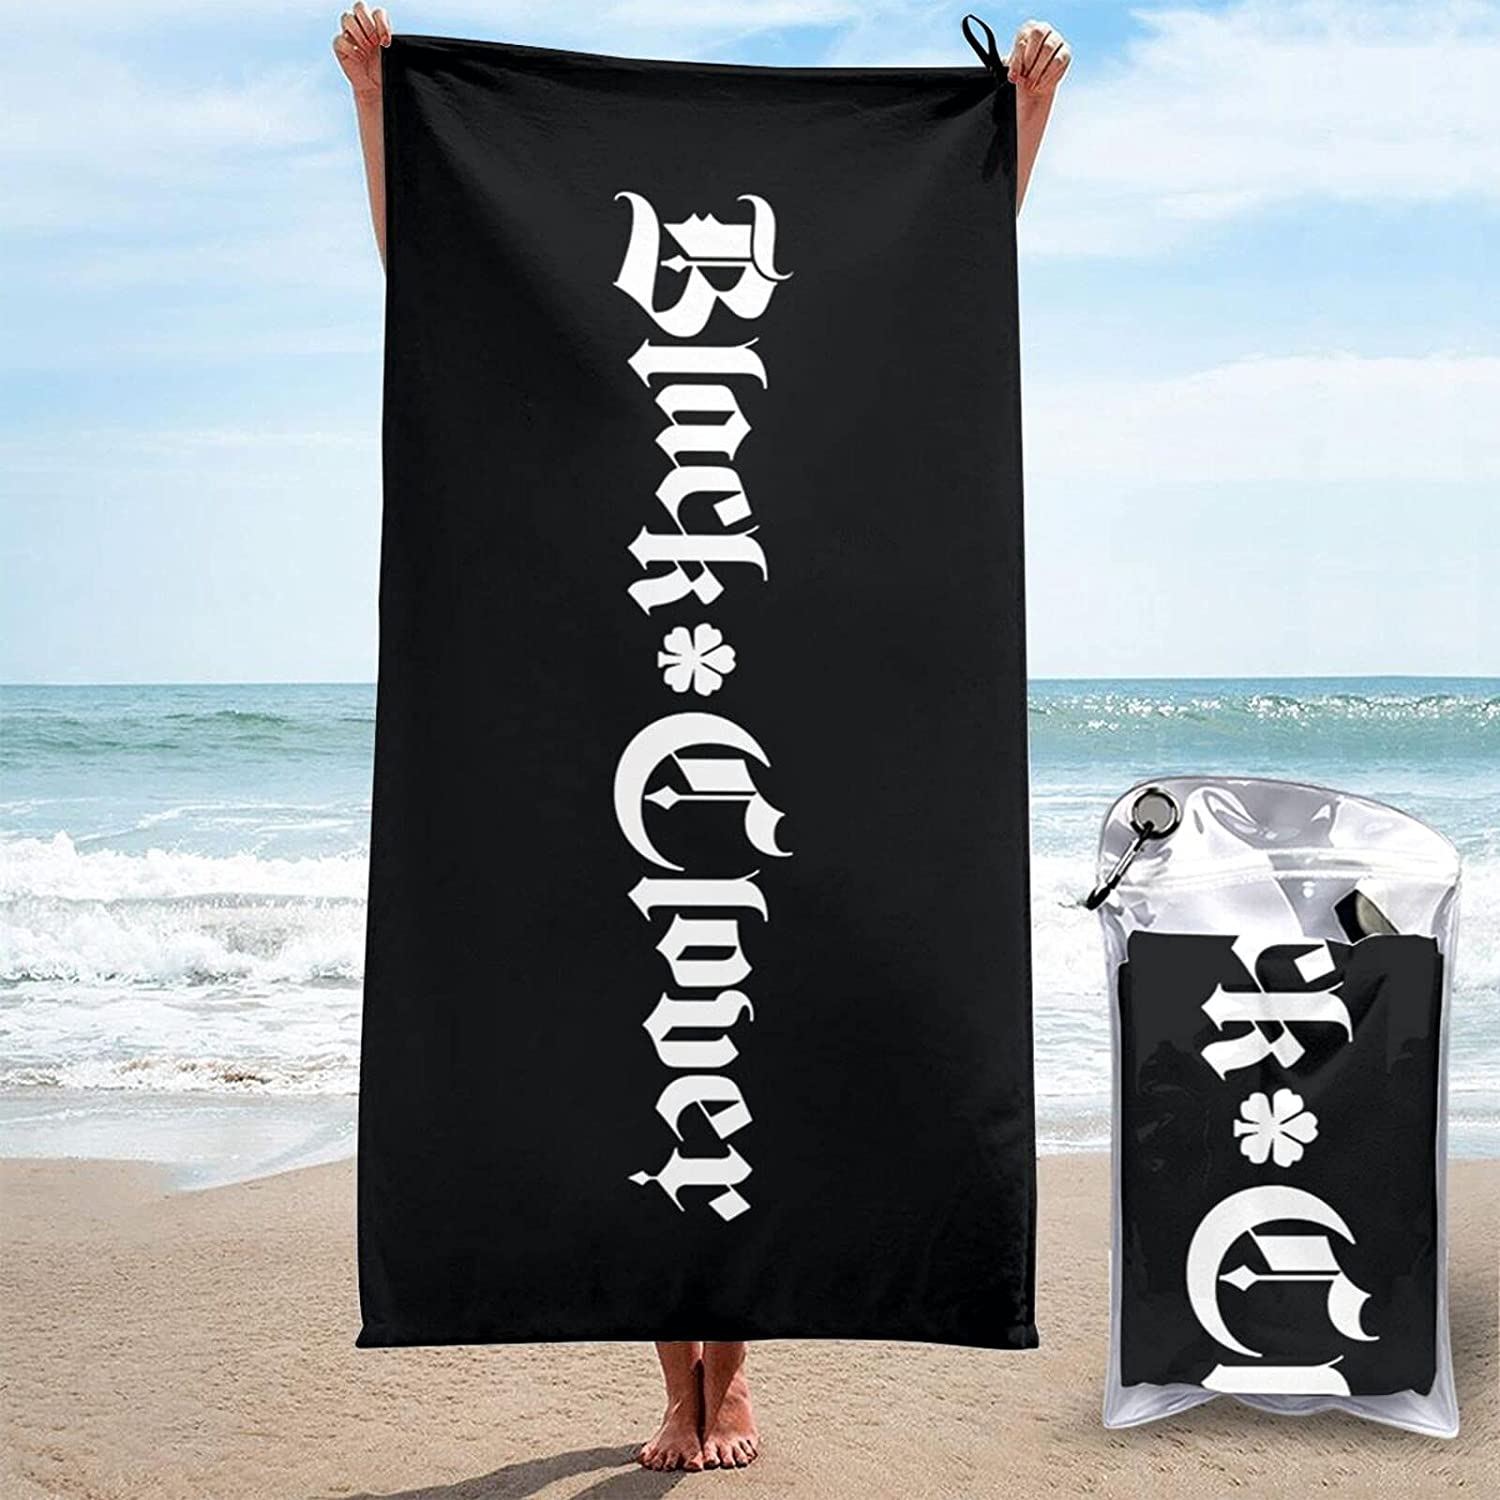 Black Free shipping anywhere in the nation Clover 3D Printed Large Beach are Shipping included Towels Quick- Sand-Free